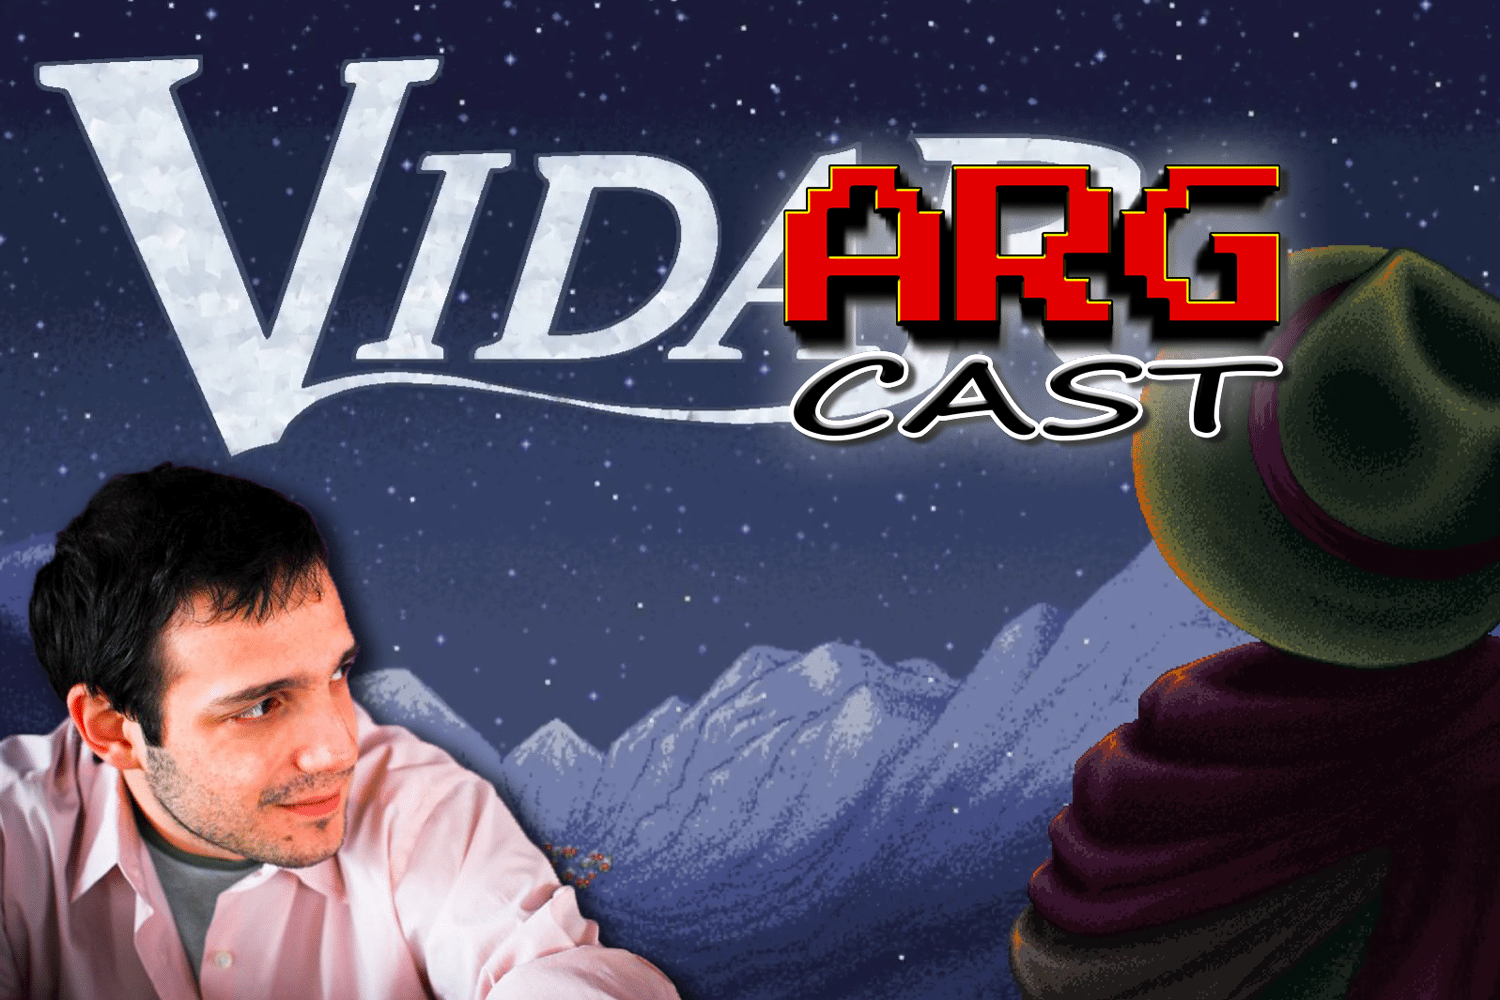 ARGcast #41: Exploring Vidar with Game Creator Dean Razavi